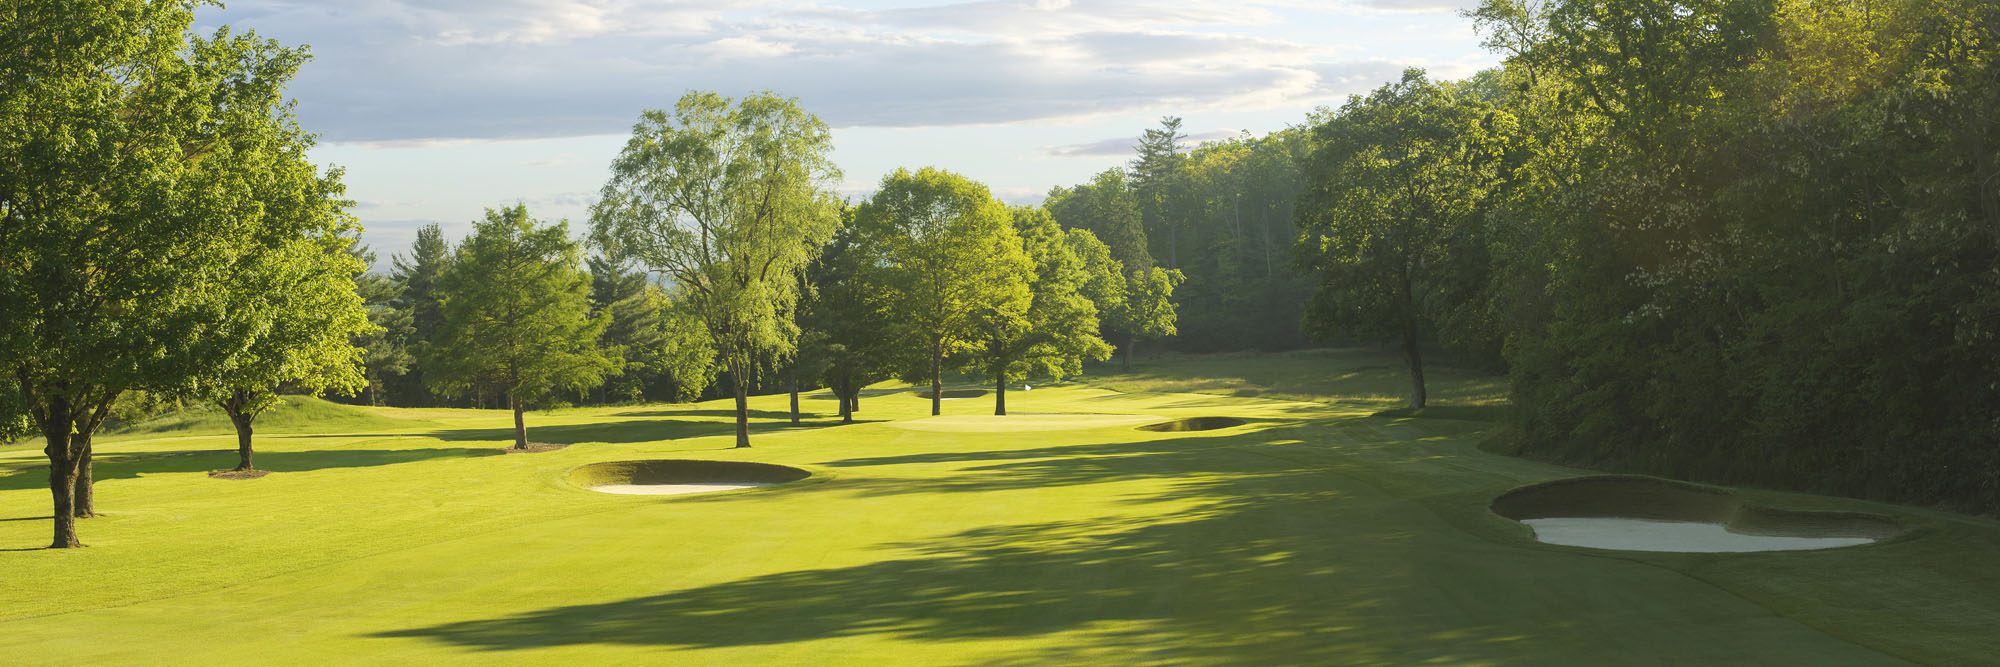 Golf Course Image - The Greenbrier Meadows Course No. 2